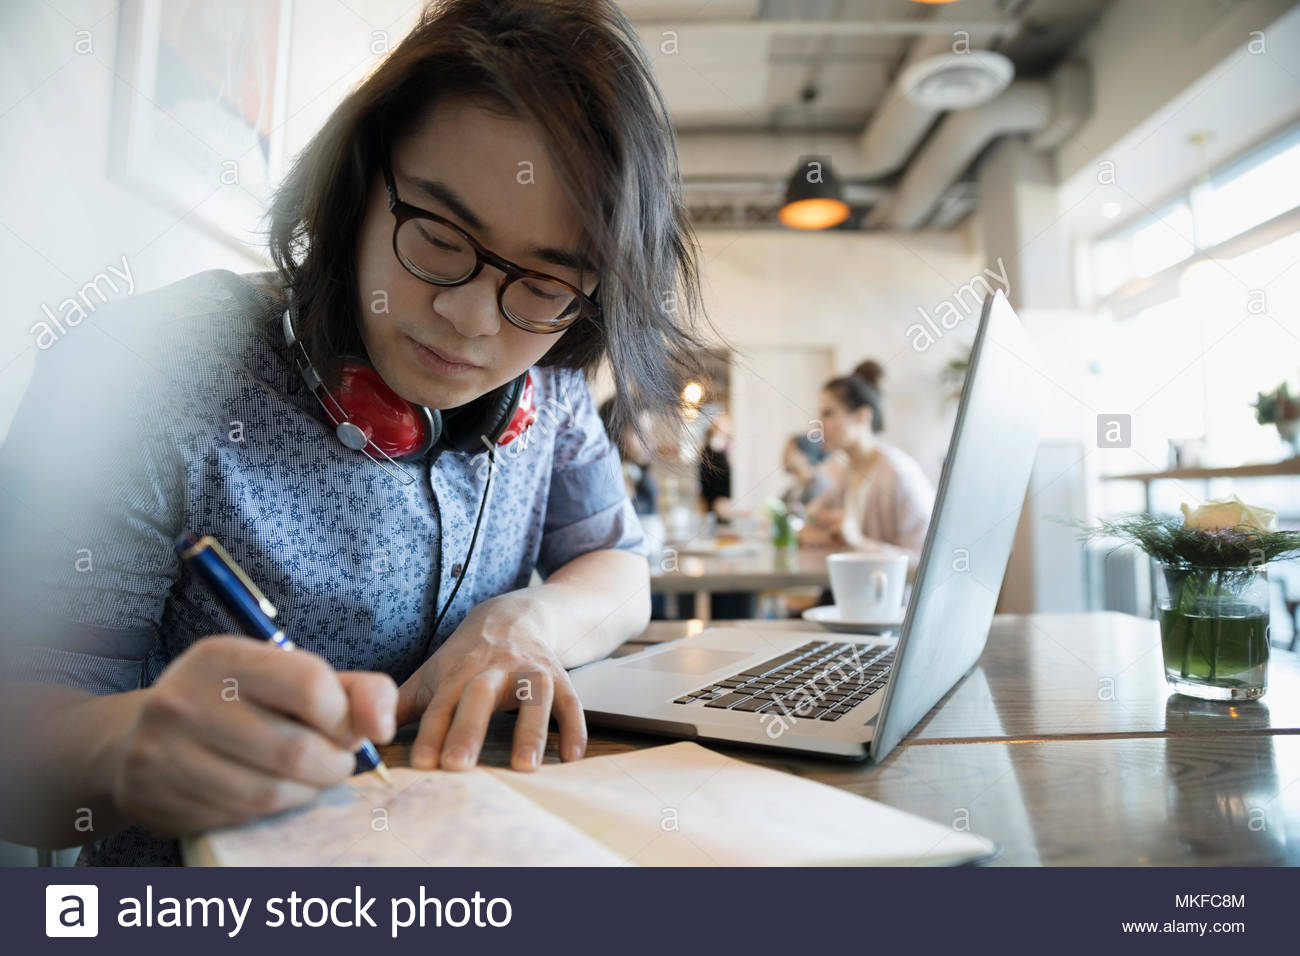 Creative young man writing in notebook, working at laptop in cafe - Stock Image